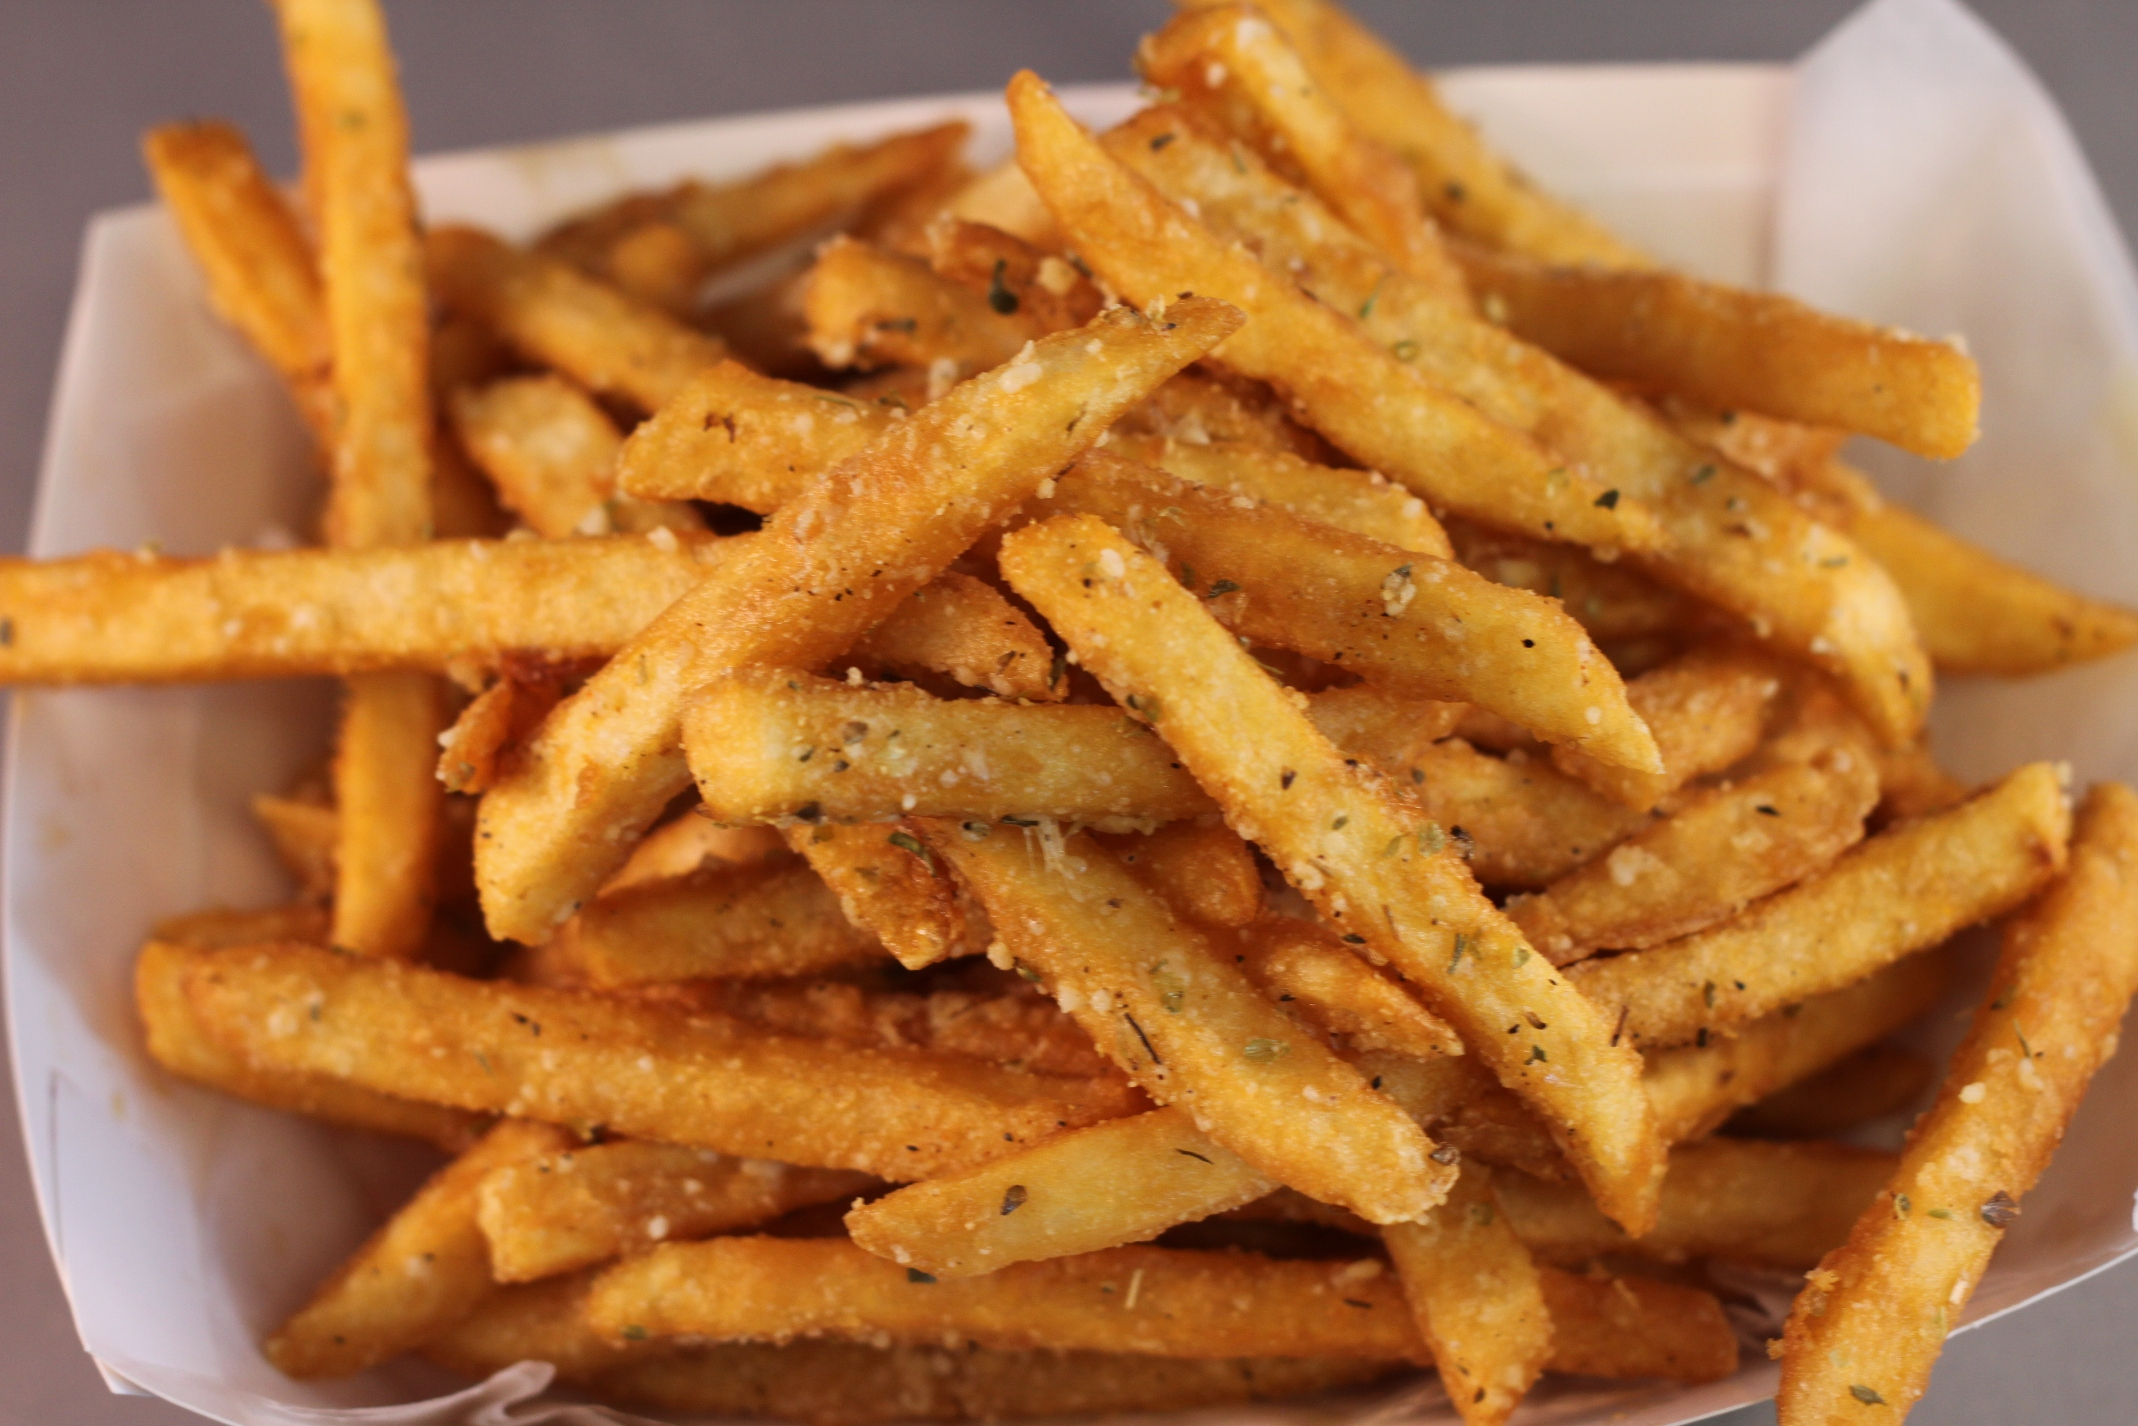 ... crispy seasoned homemade crispy seasoned crispy french fries